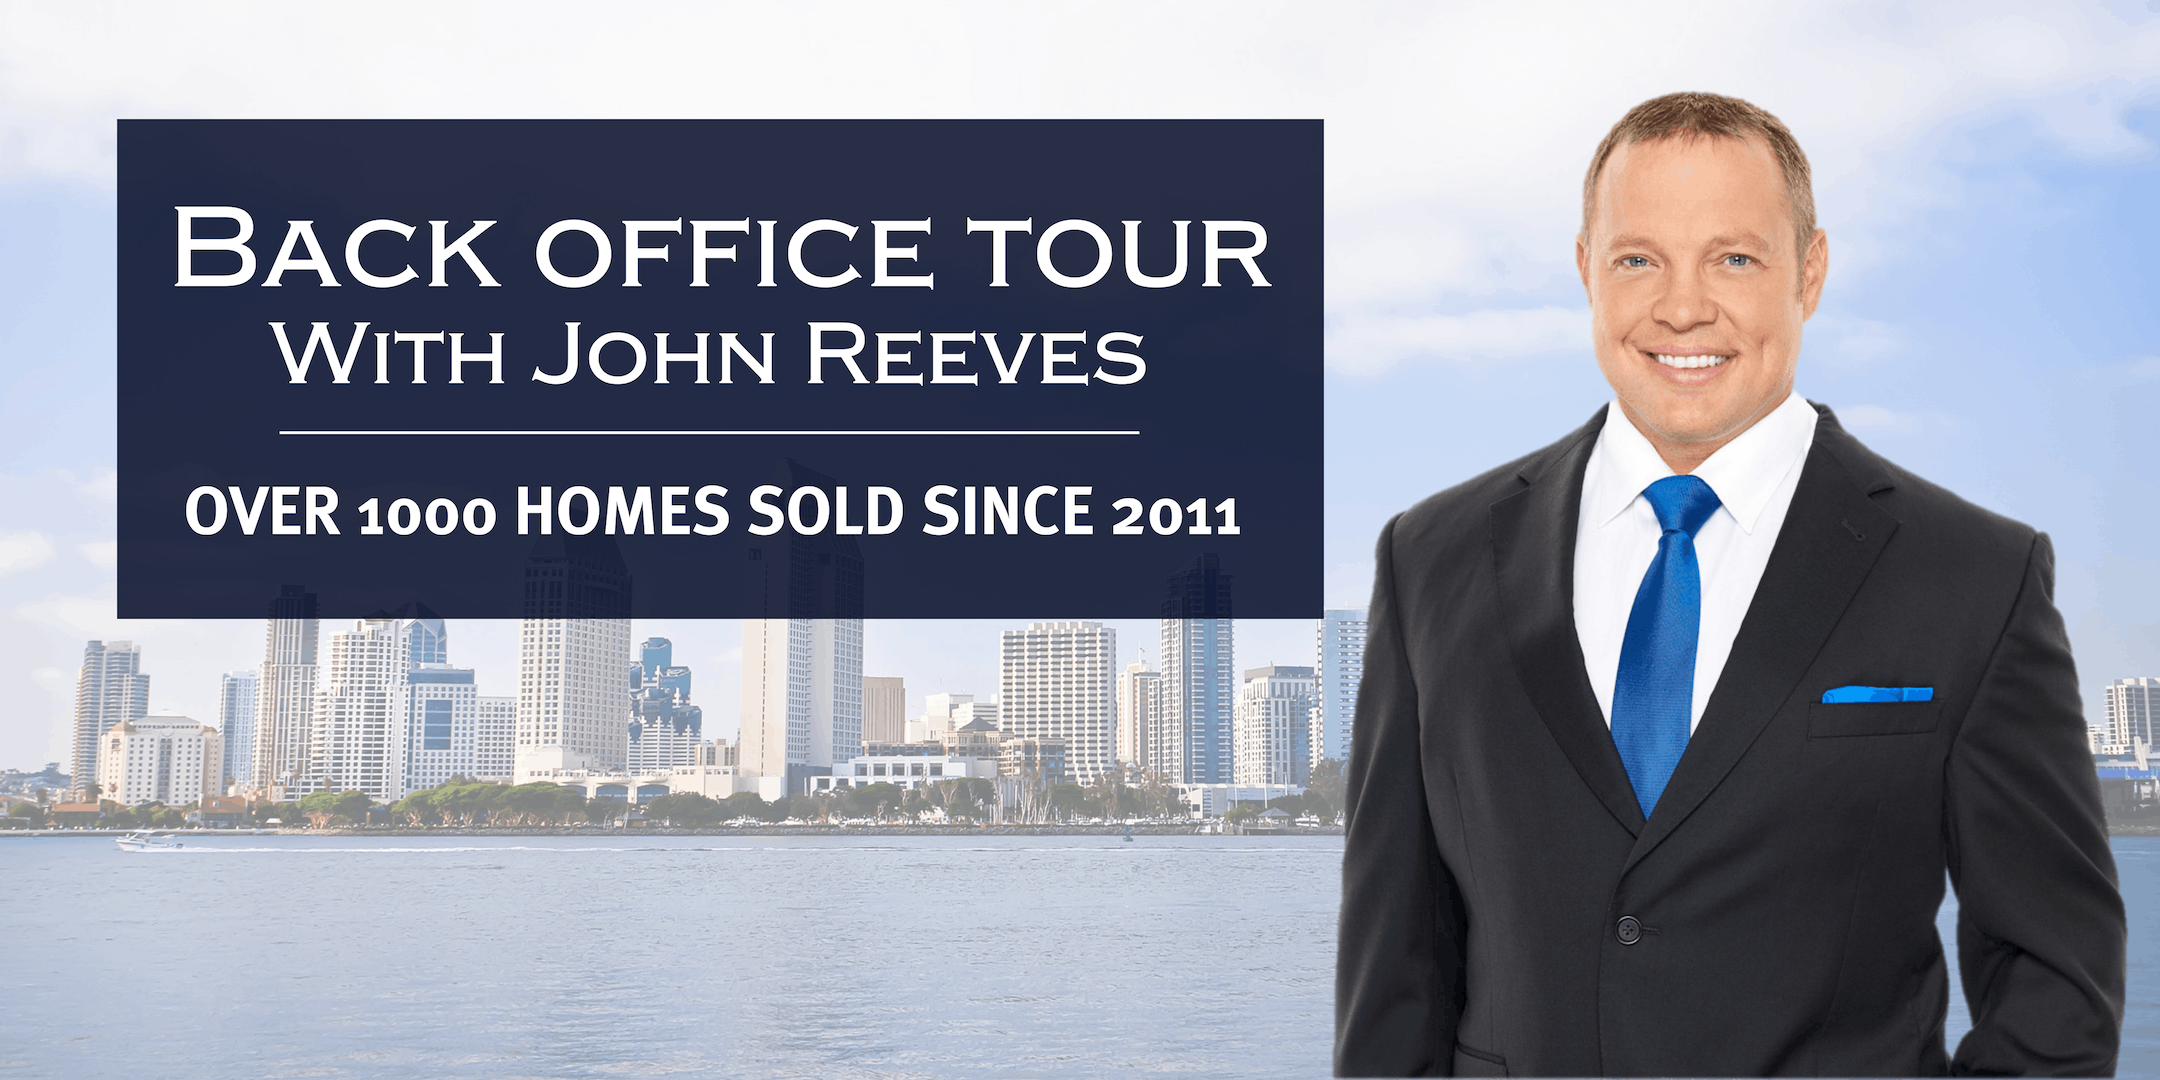 Back Office Tour with John Reeves - January 23rd